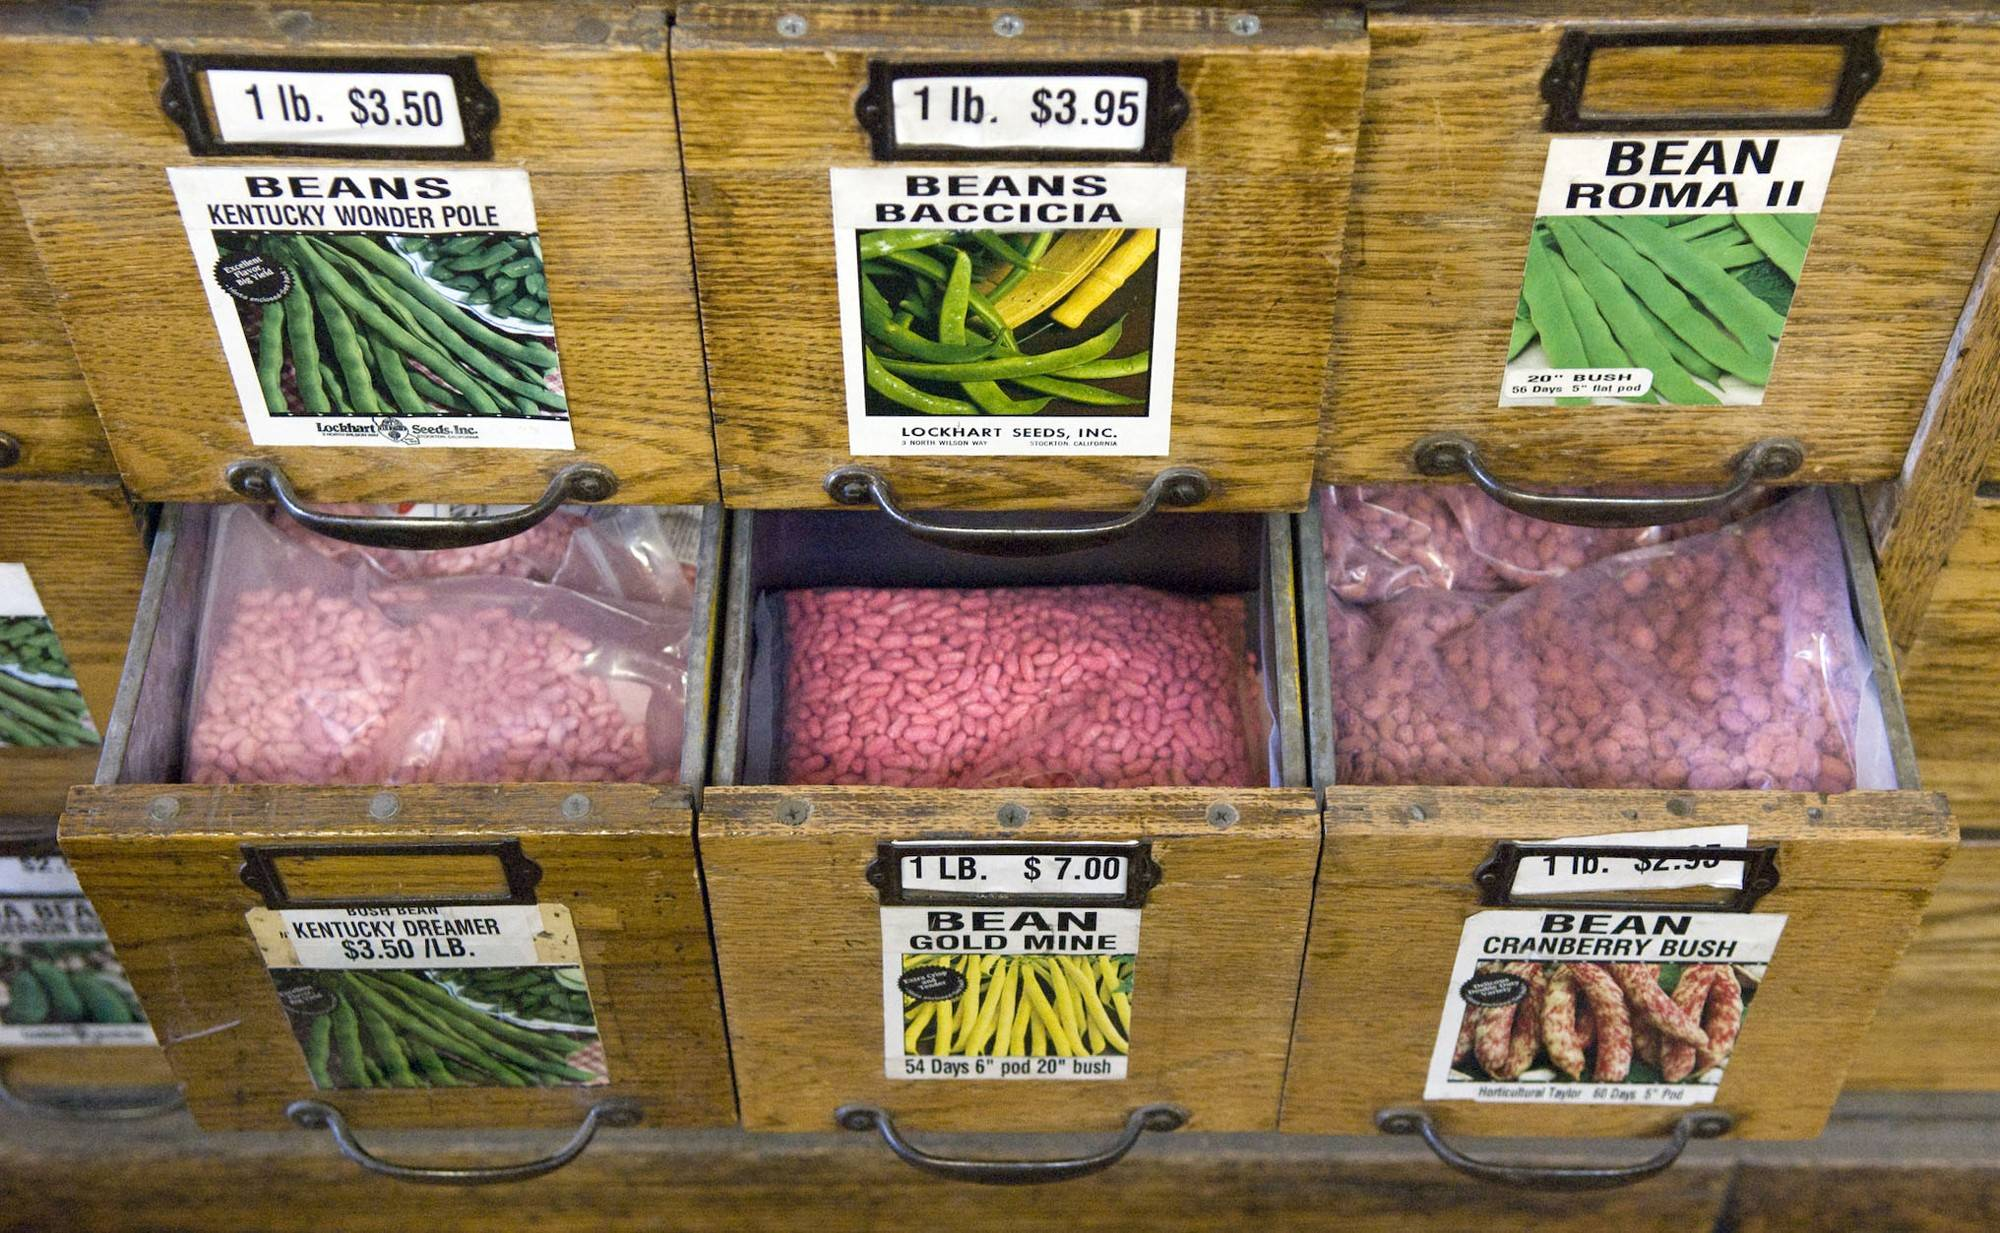 Numerous varieties of prepackaged seeds can be purchased at Lockhart Seeds.